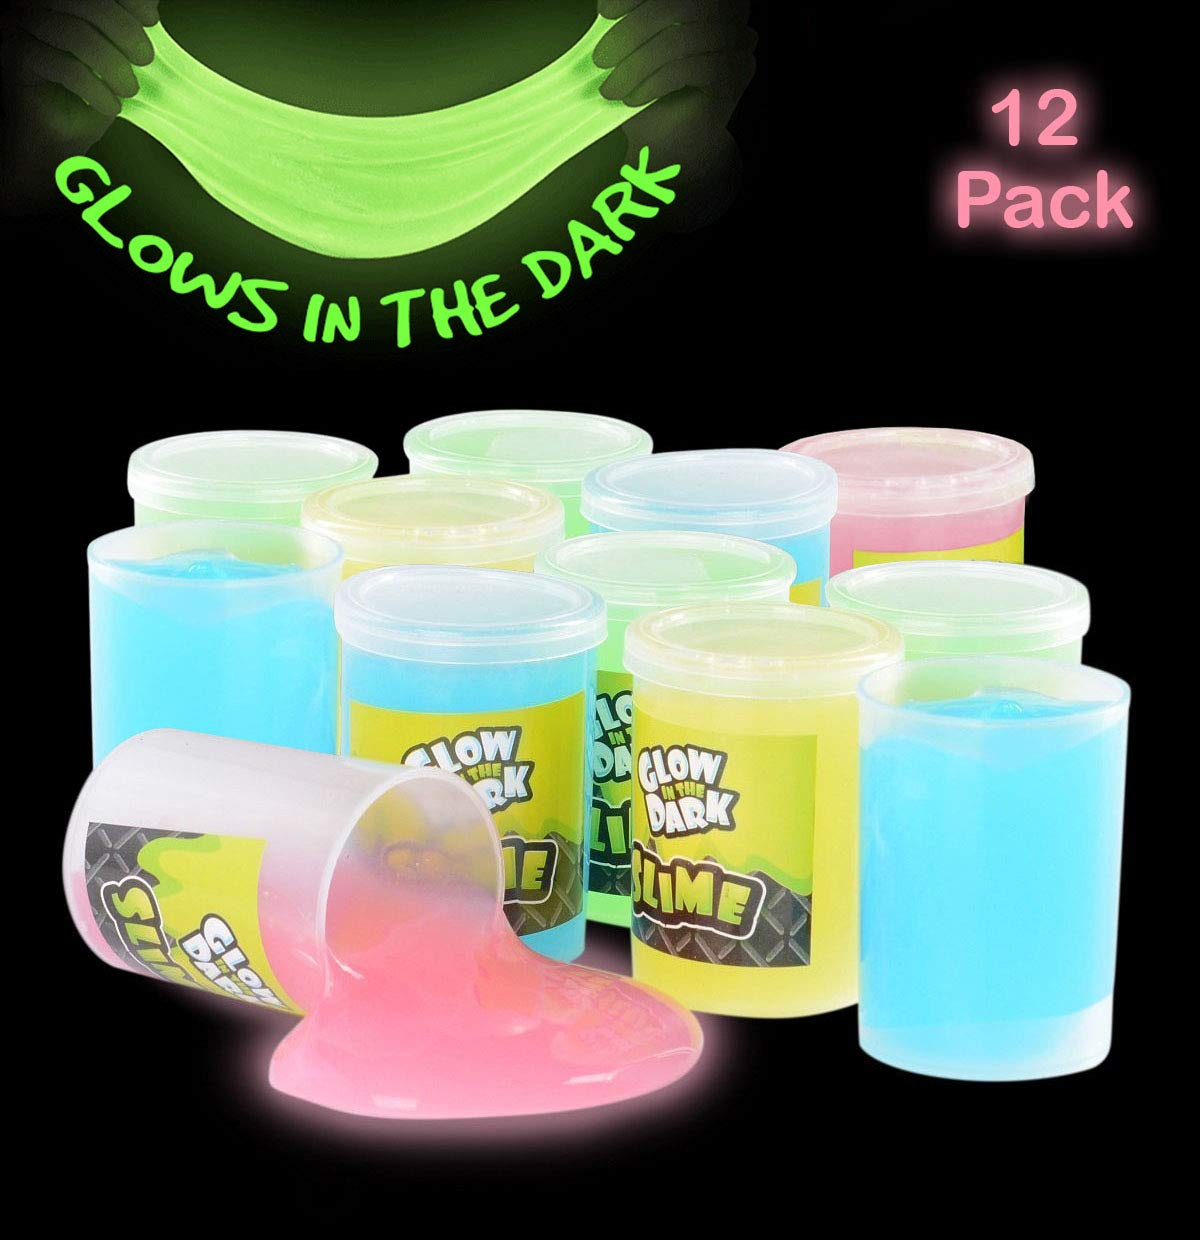 Katzco Glow in The Dark Slime - 12 Pack Assorted Neon Colors - Green, Blue, Orange and Yellow for Kids, Goody Bag Filler, Birthday Gifts Non-Toxic by Katzco